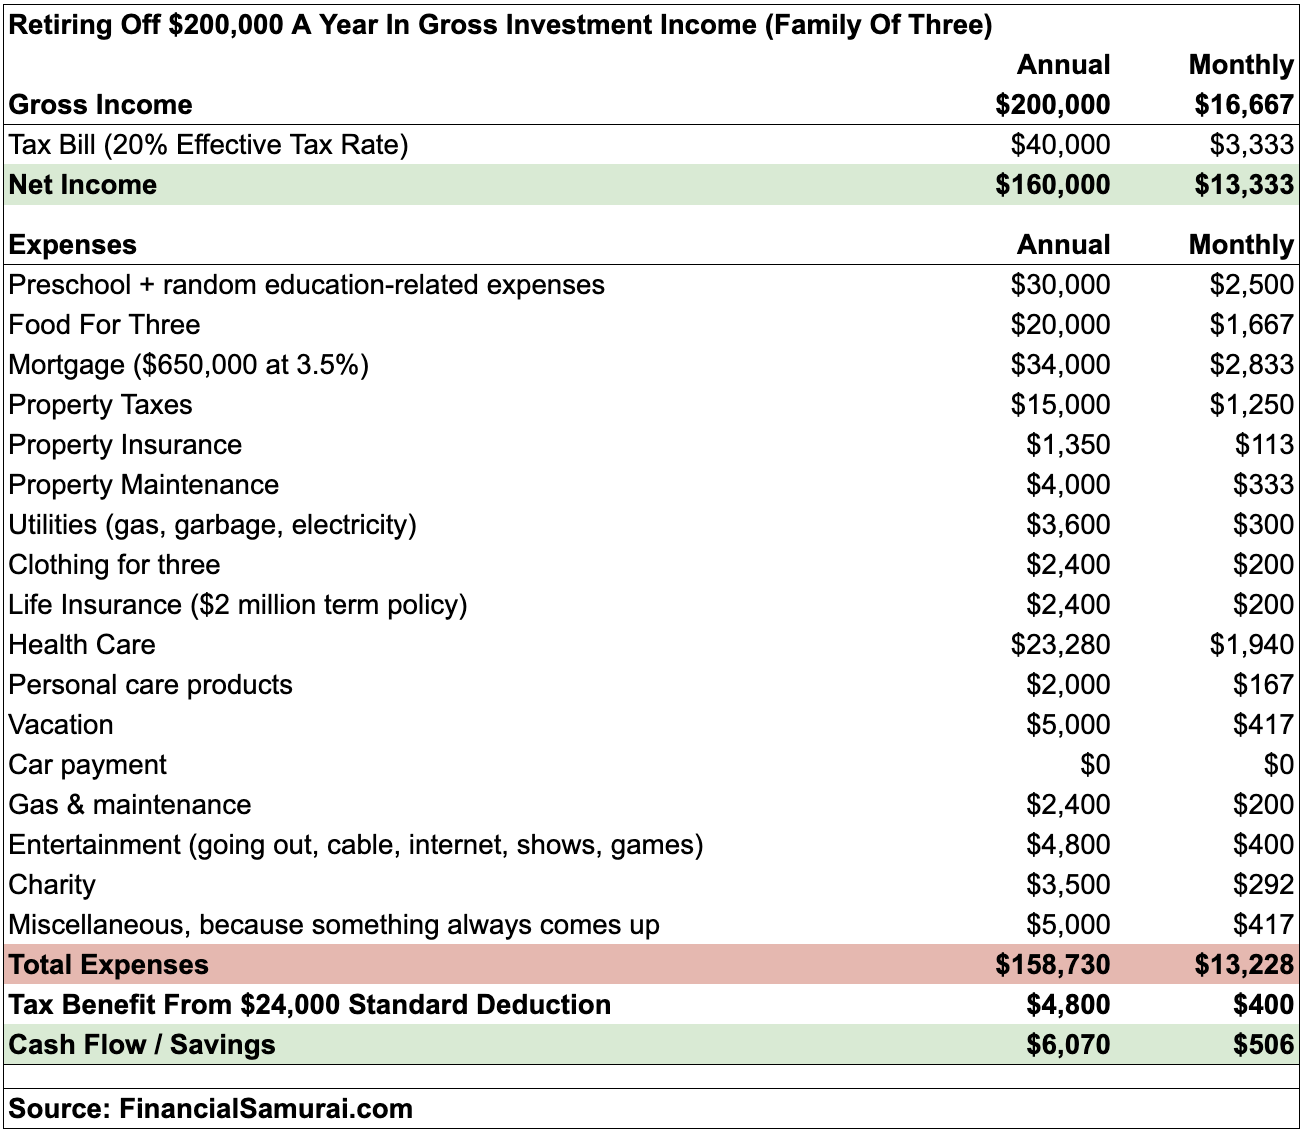 Financial Targets Are Always Moving - Budget Chart For Retiring Off $200,000 In Gross Investment Income